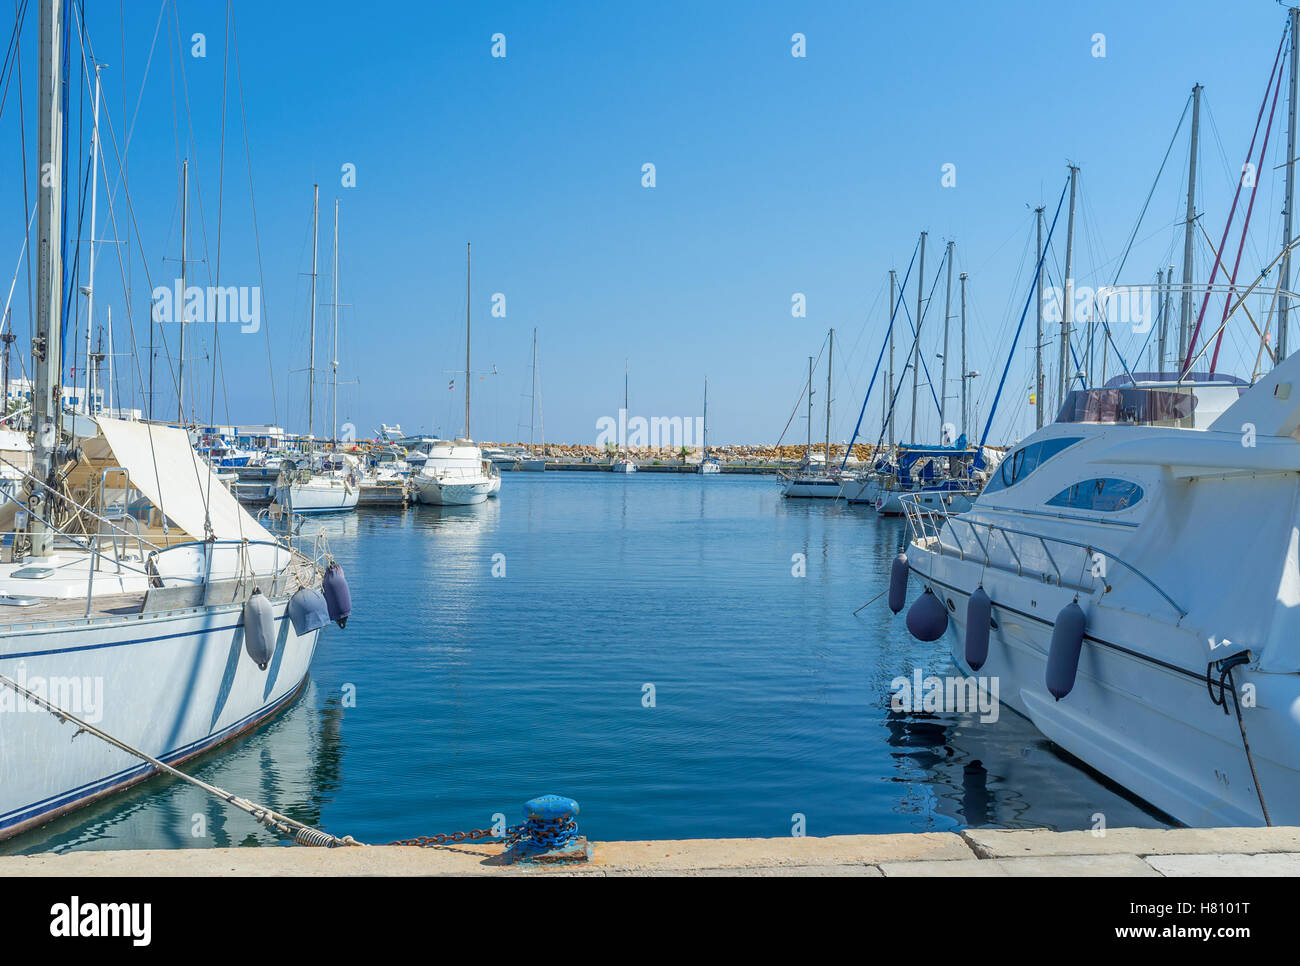 The resorts of Tunisia offers many ways of timespending, the yachting is the one of main, Monastir. - Stock Image